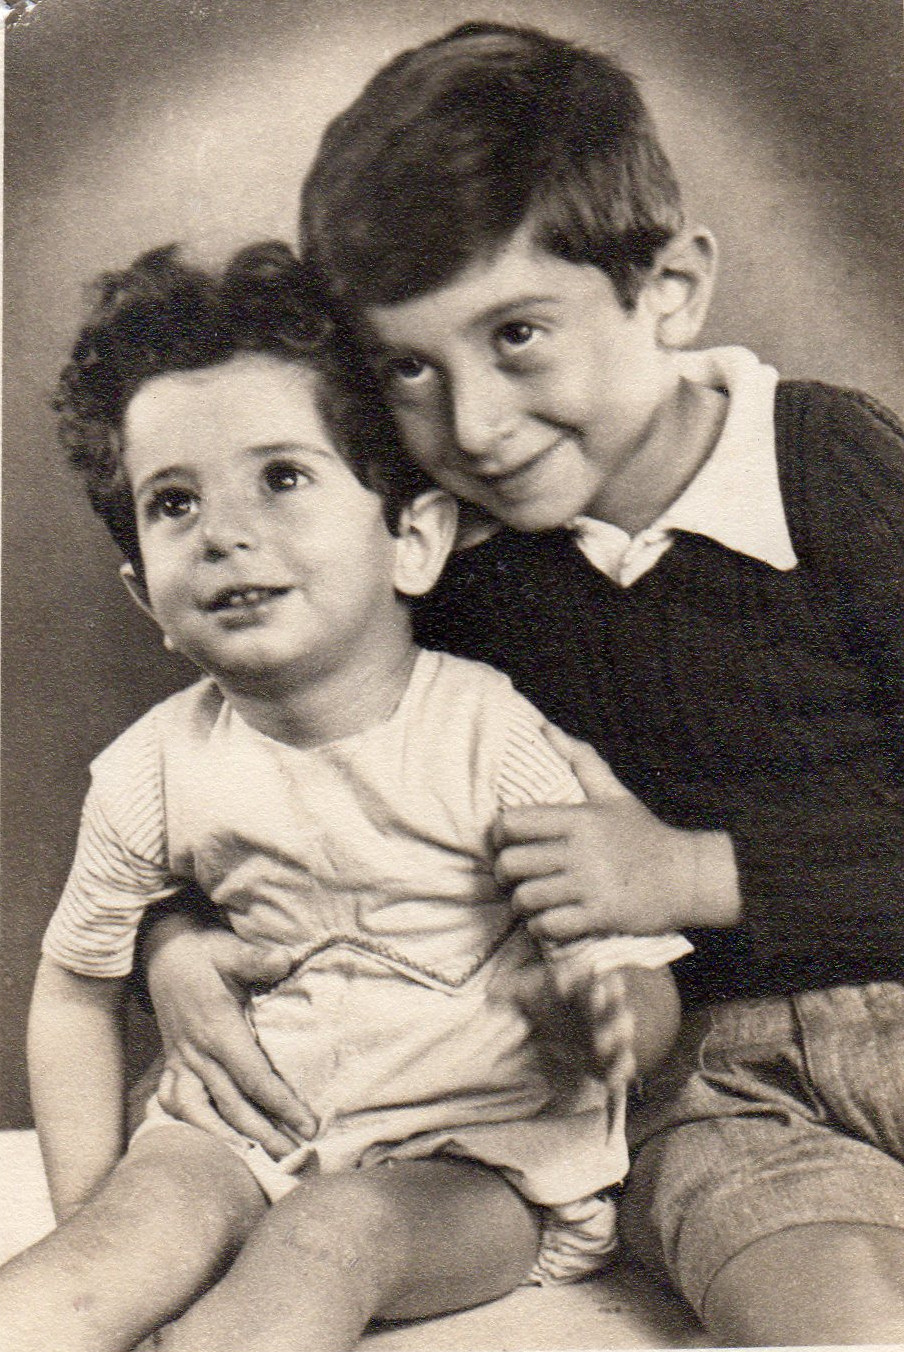 Right : Iraj Afnan Left : Parviz Afnan 1947